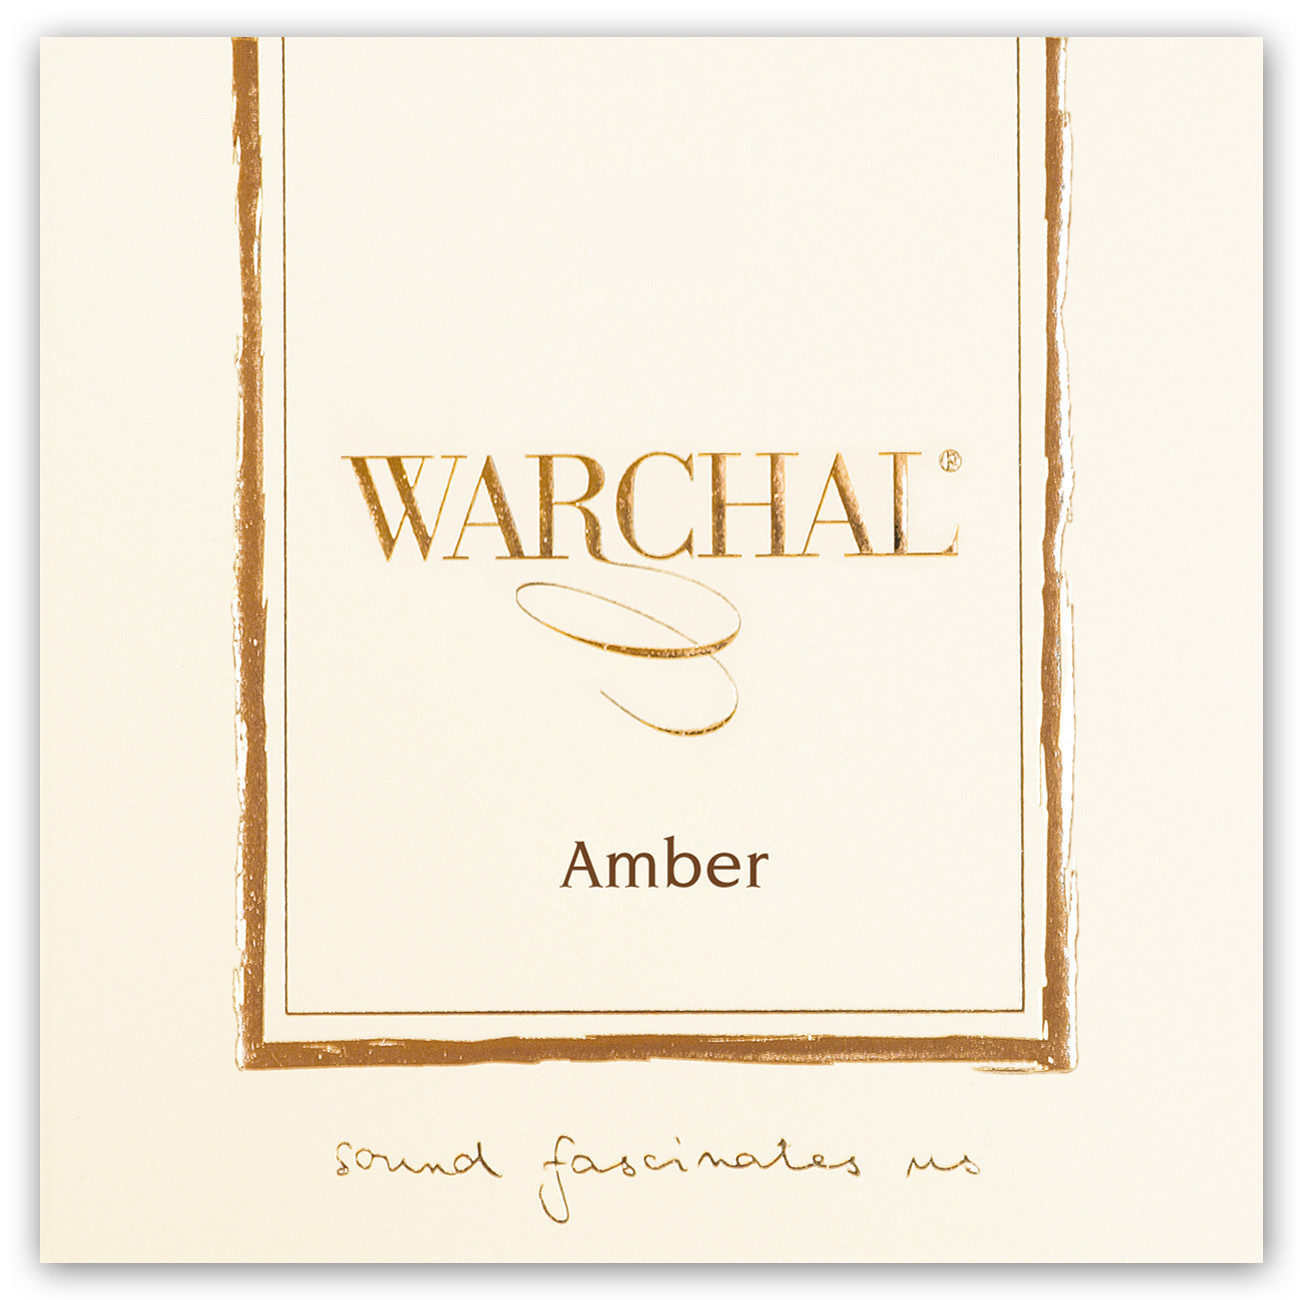 Warchal Amber Cello D